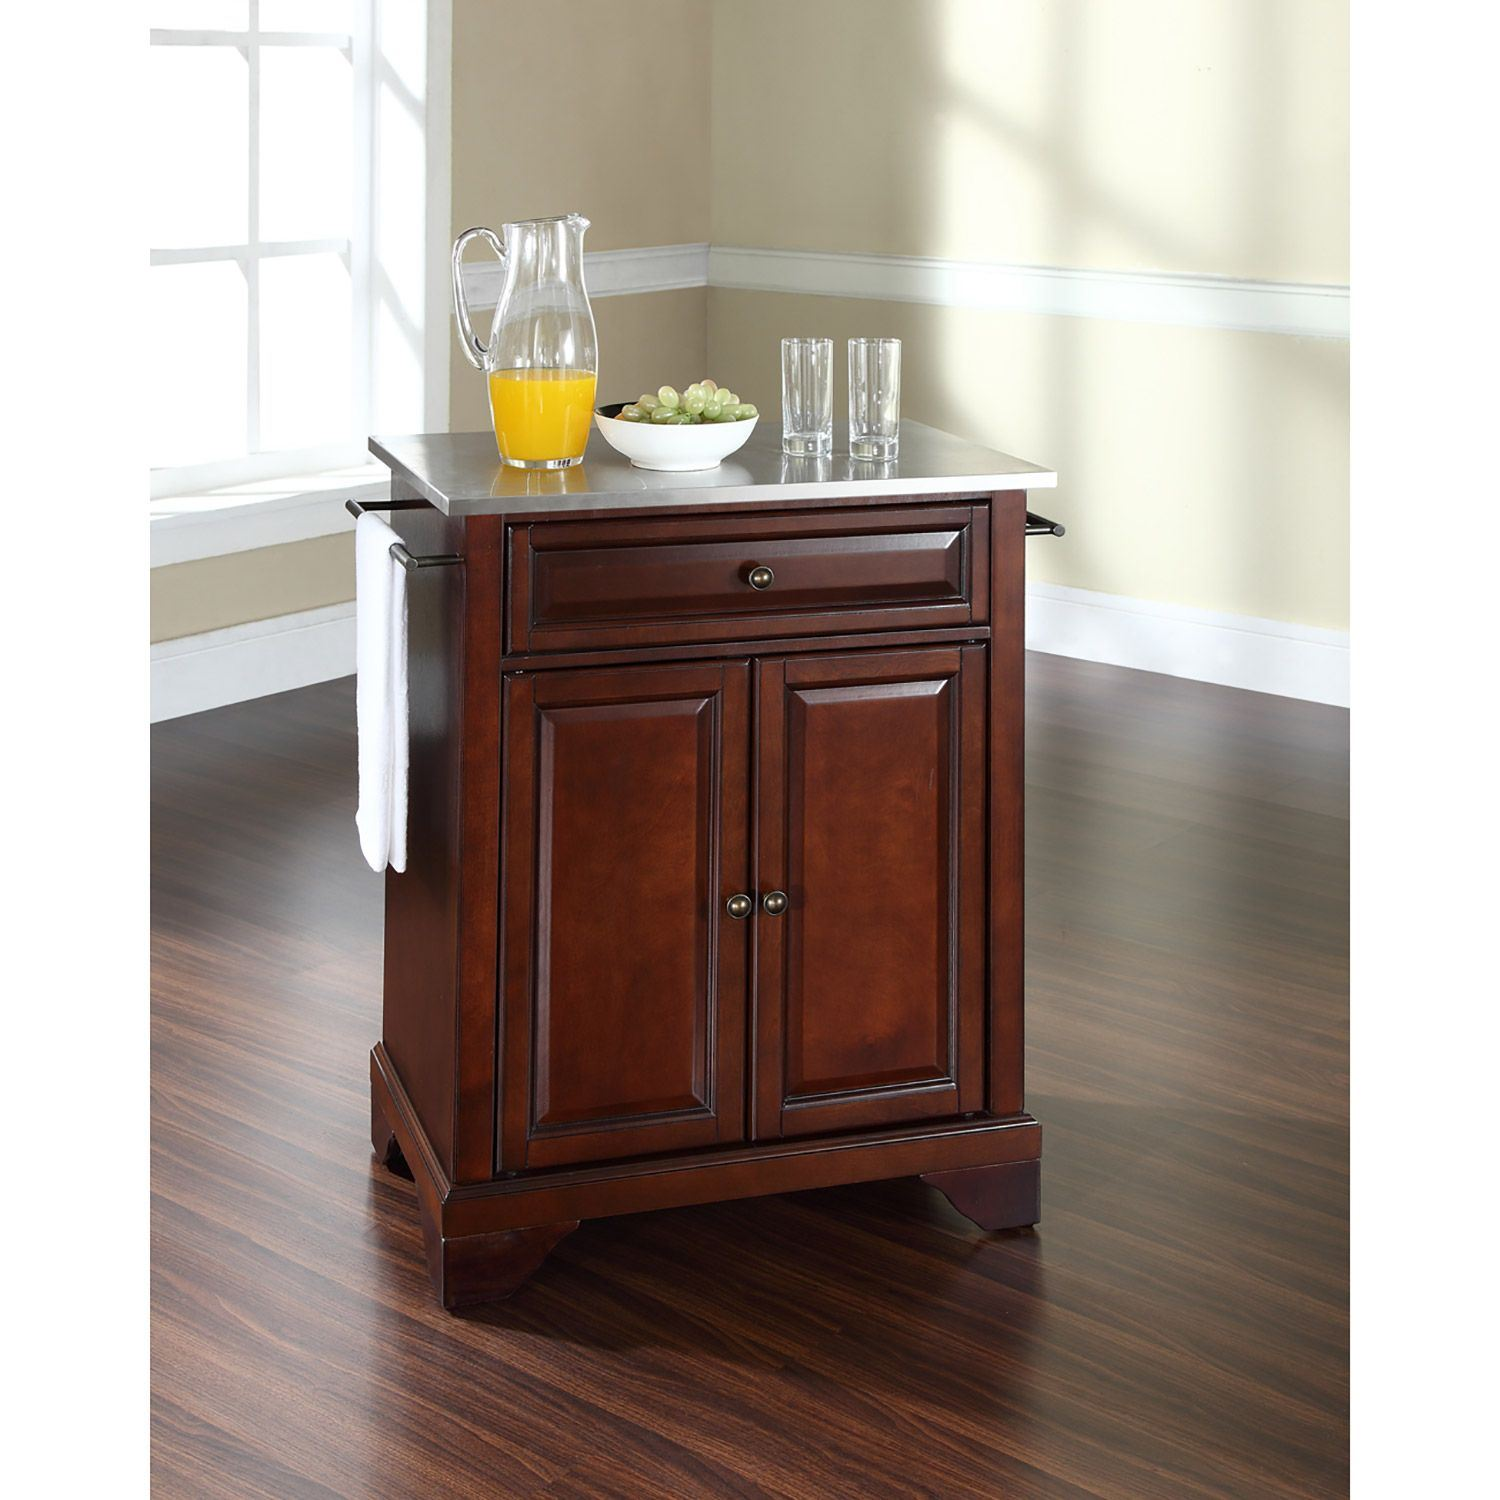 Picture of Lafayette Steel Top Kitchen Cart, Mahogany *D